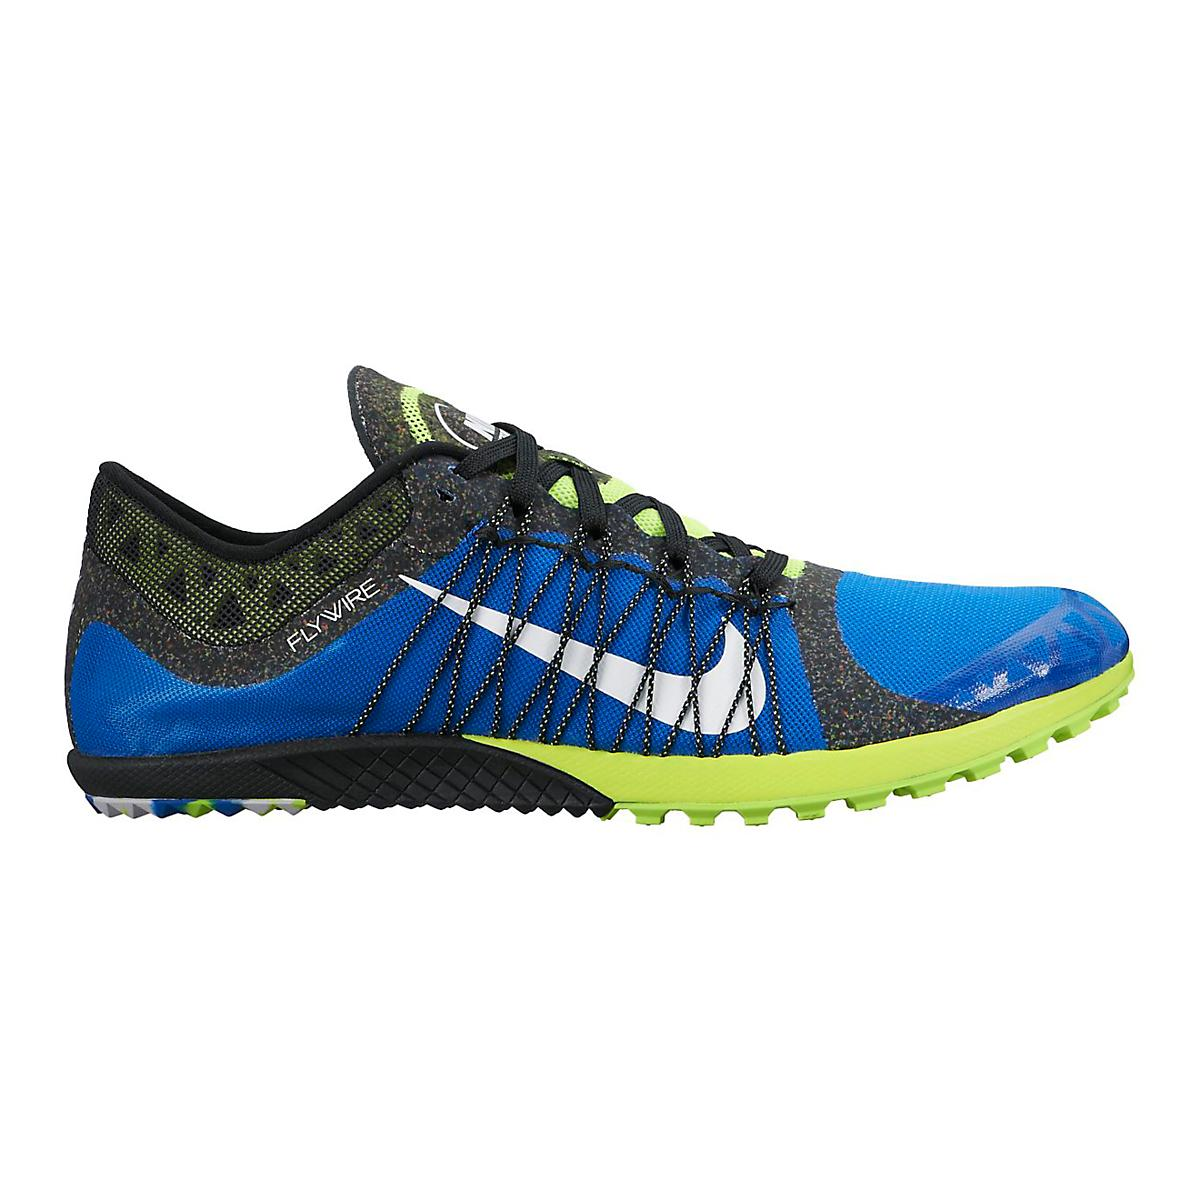 bdfe10bb0793 Nike Zoom Victory Waffle 3 Cross Country Shoe at Road Runner Sports